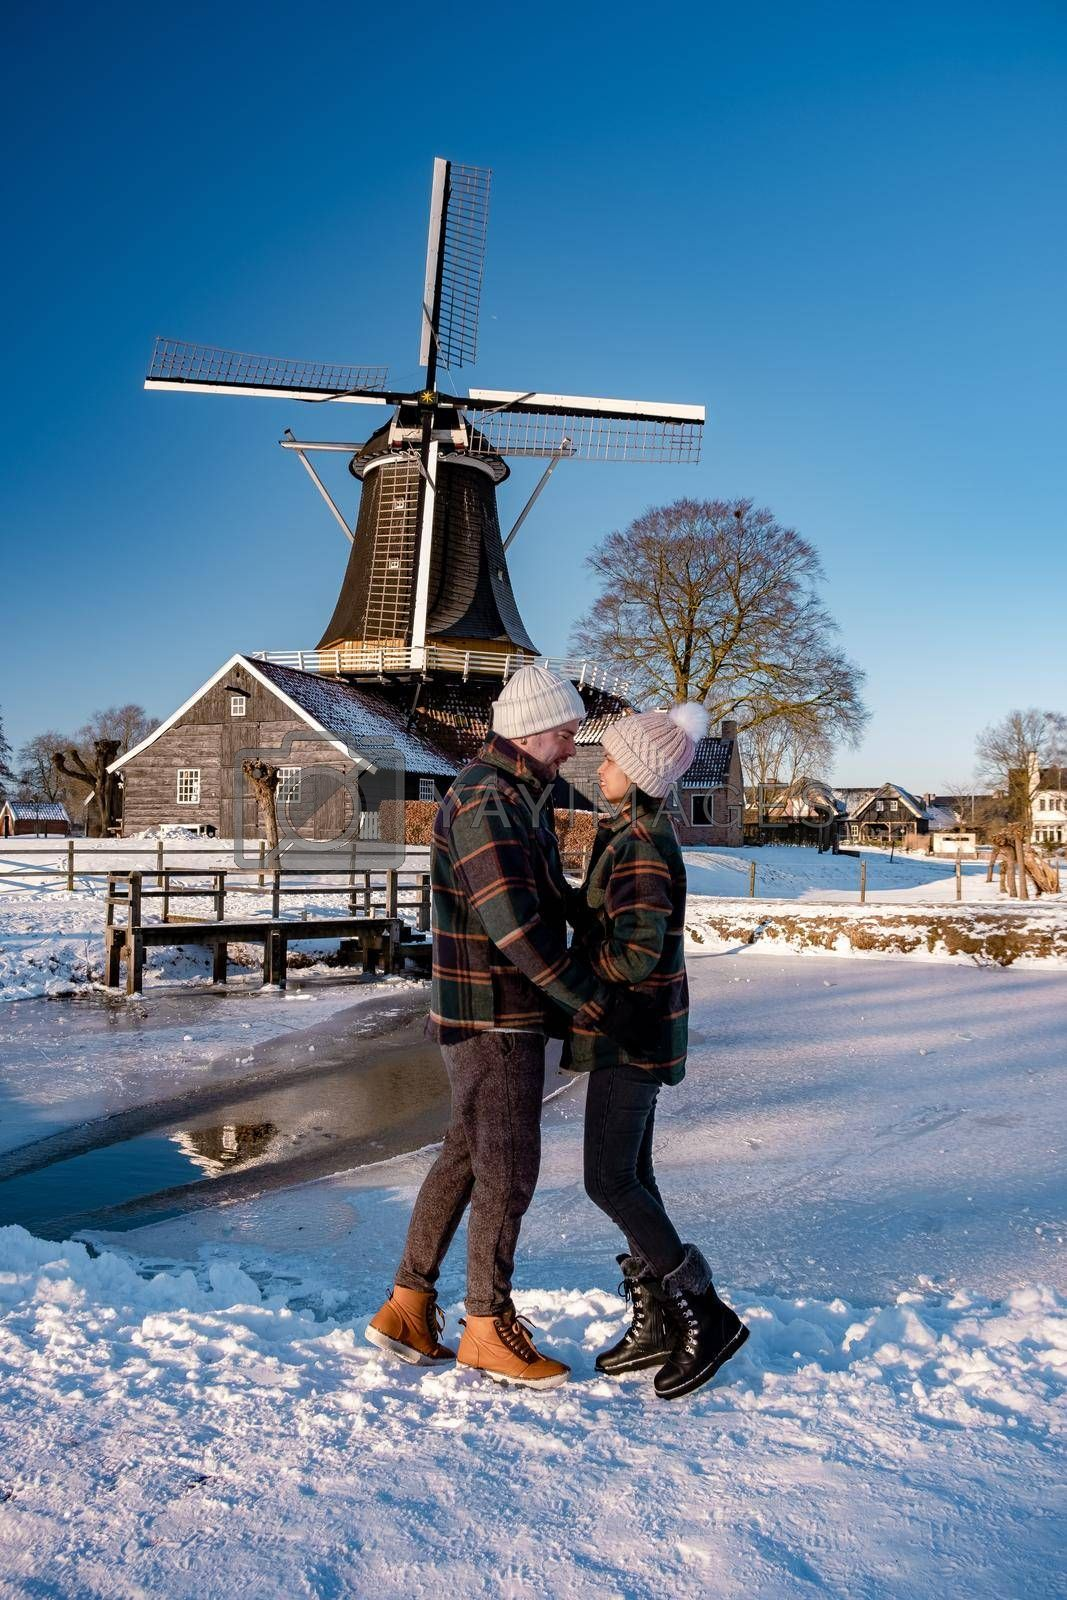 Pelmolen Ter Horst, Rijssen covered in a snowy landscape Overijssel Netherlands, historical wind mill during winter. wooden old windmill in Holland, couple men and woman walking in the snow